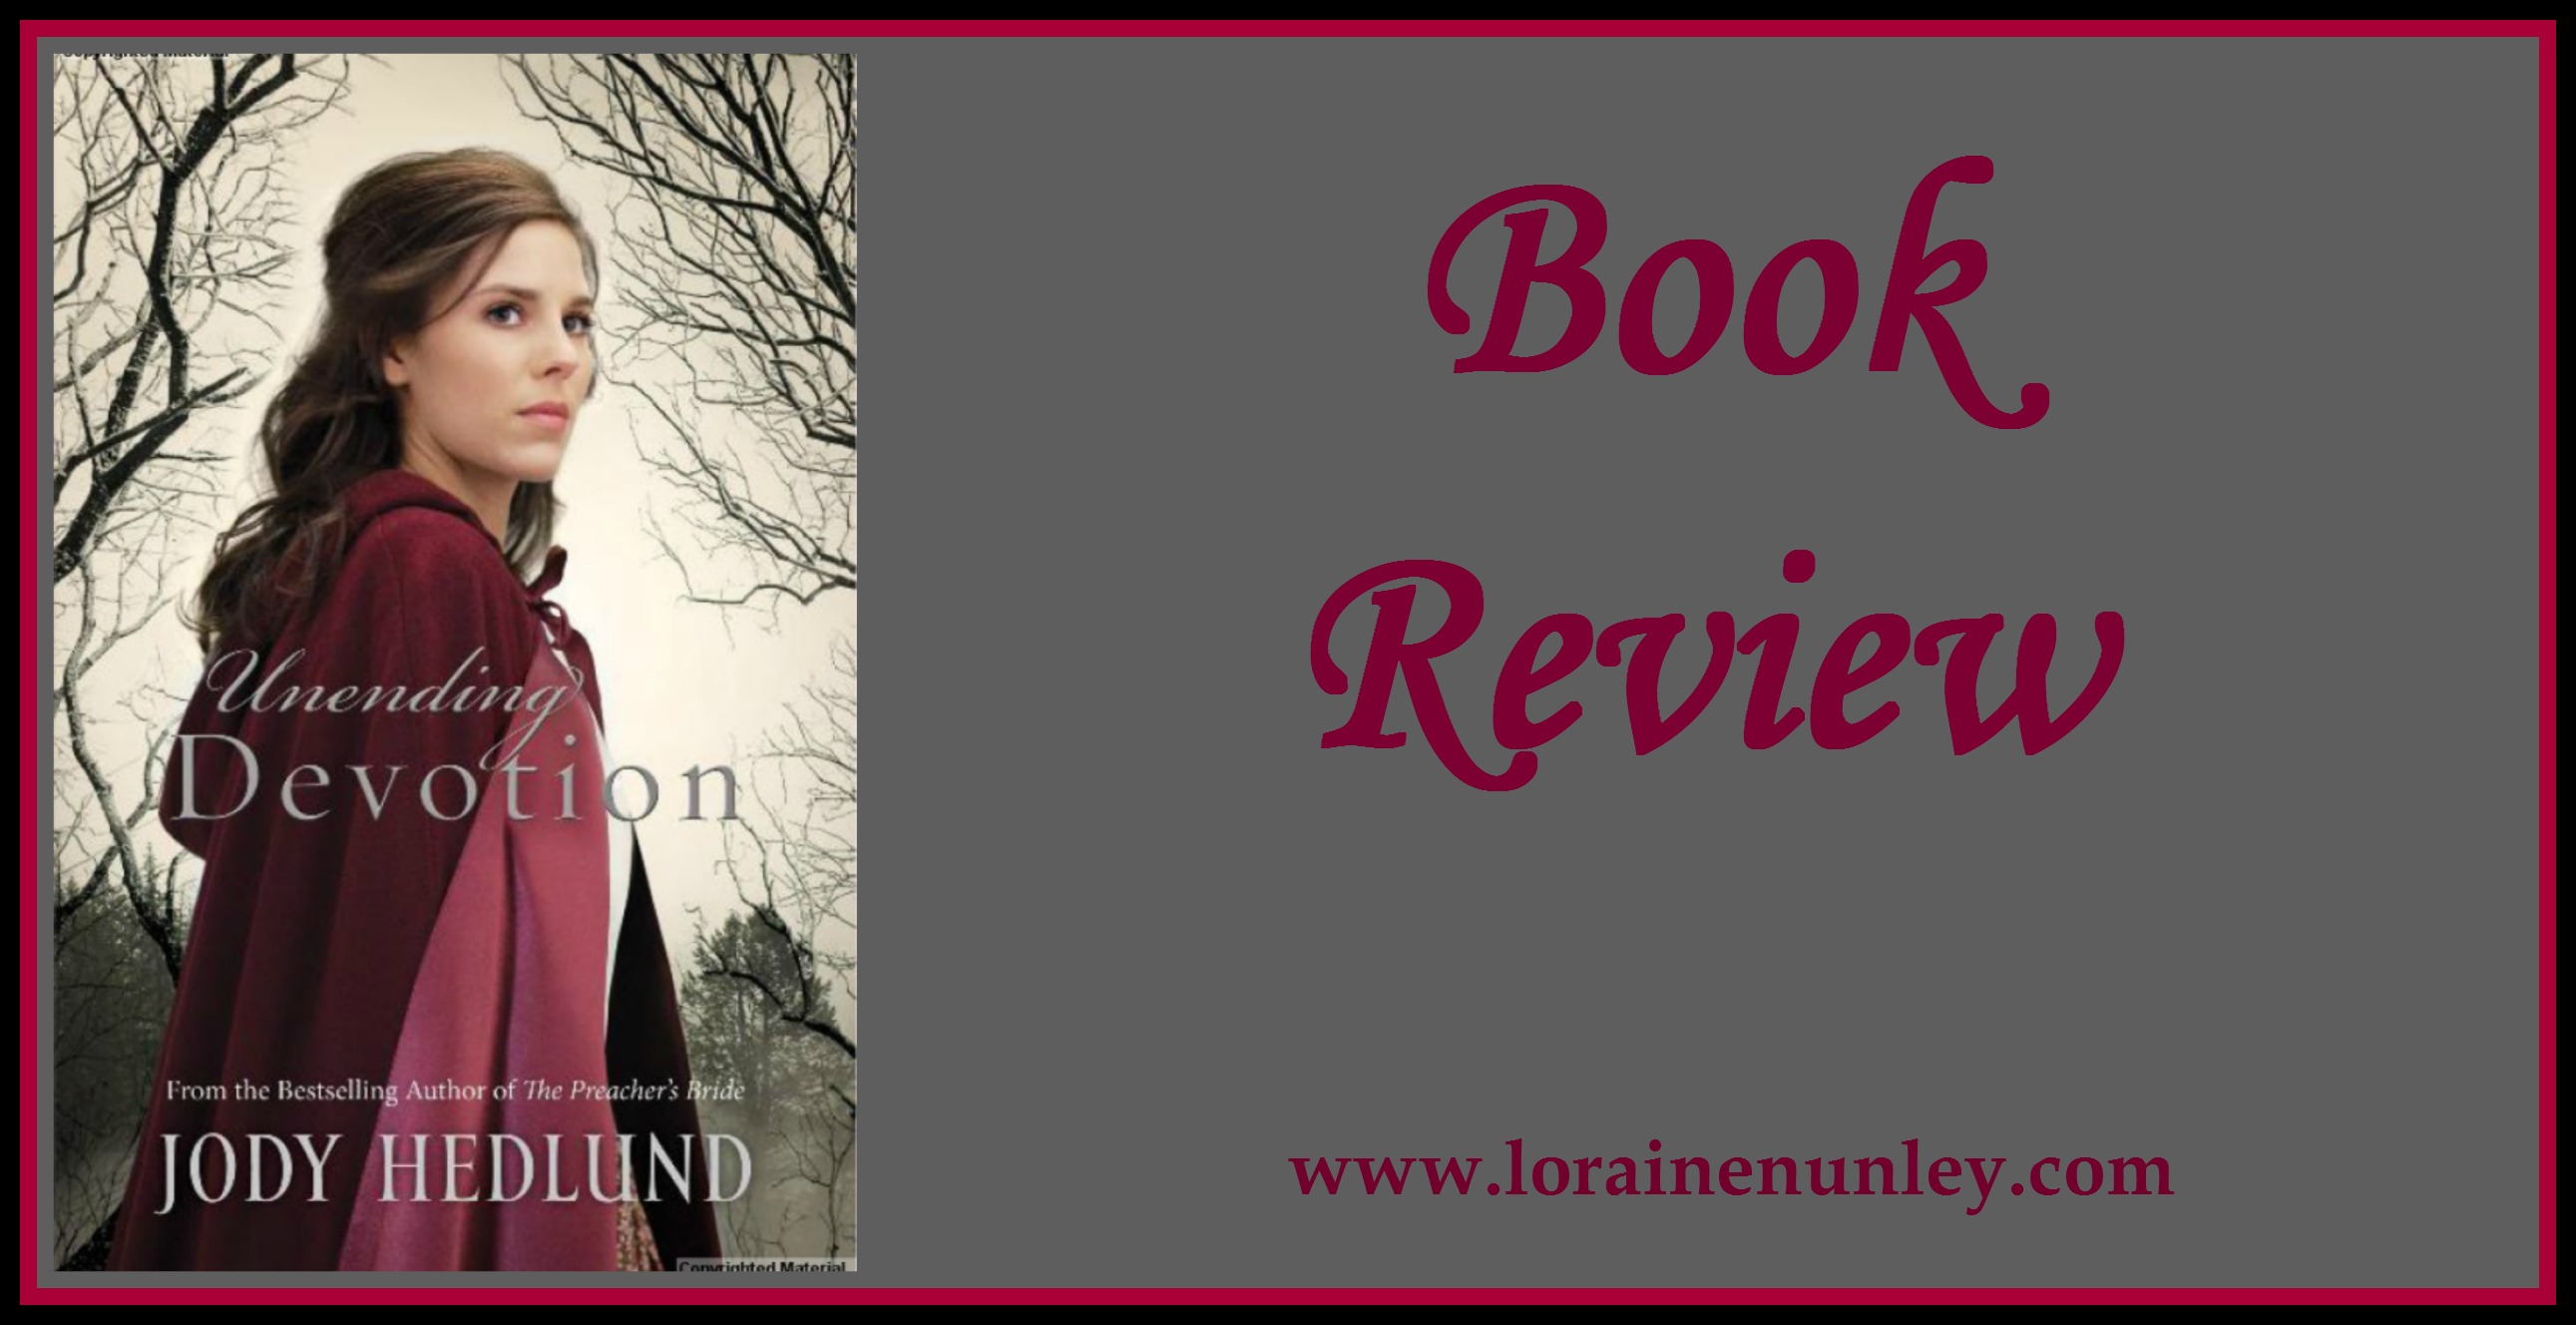 Book Review: Unending Devotion by Jody Hedlund